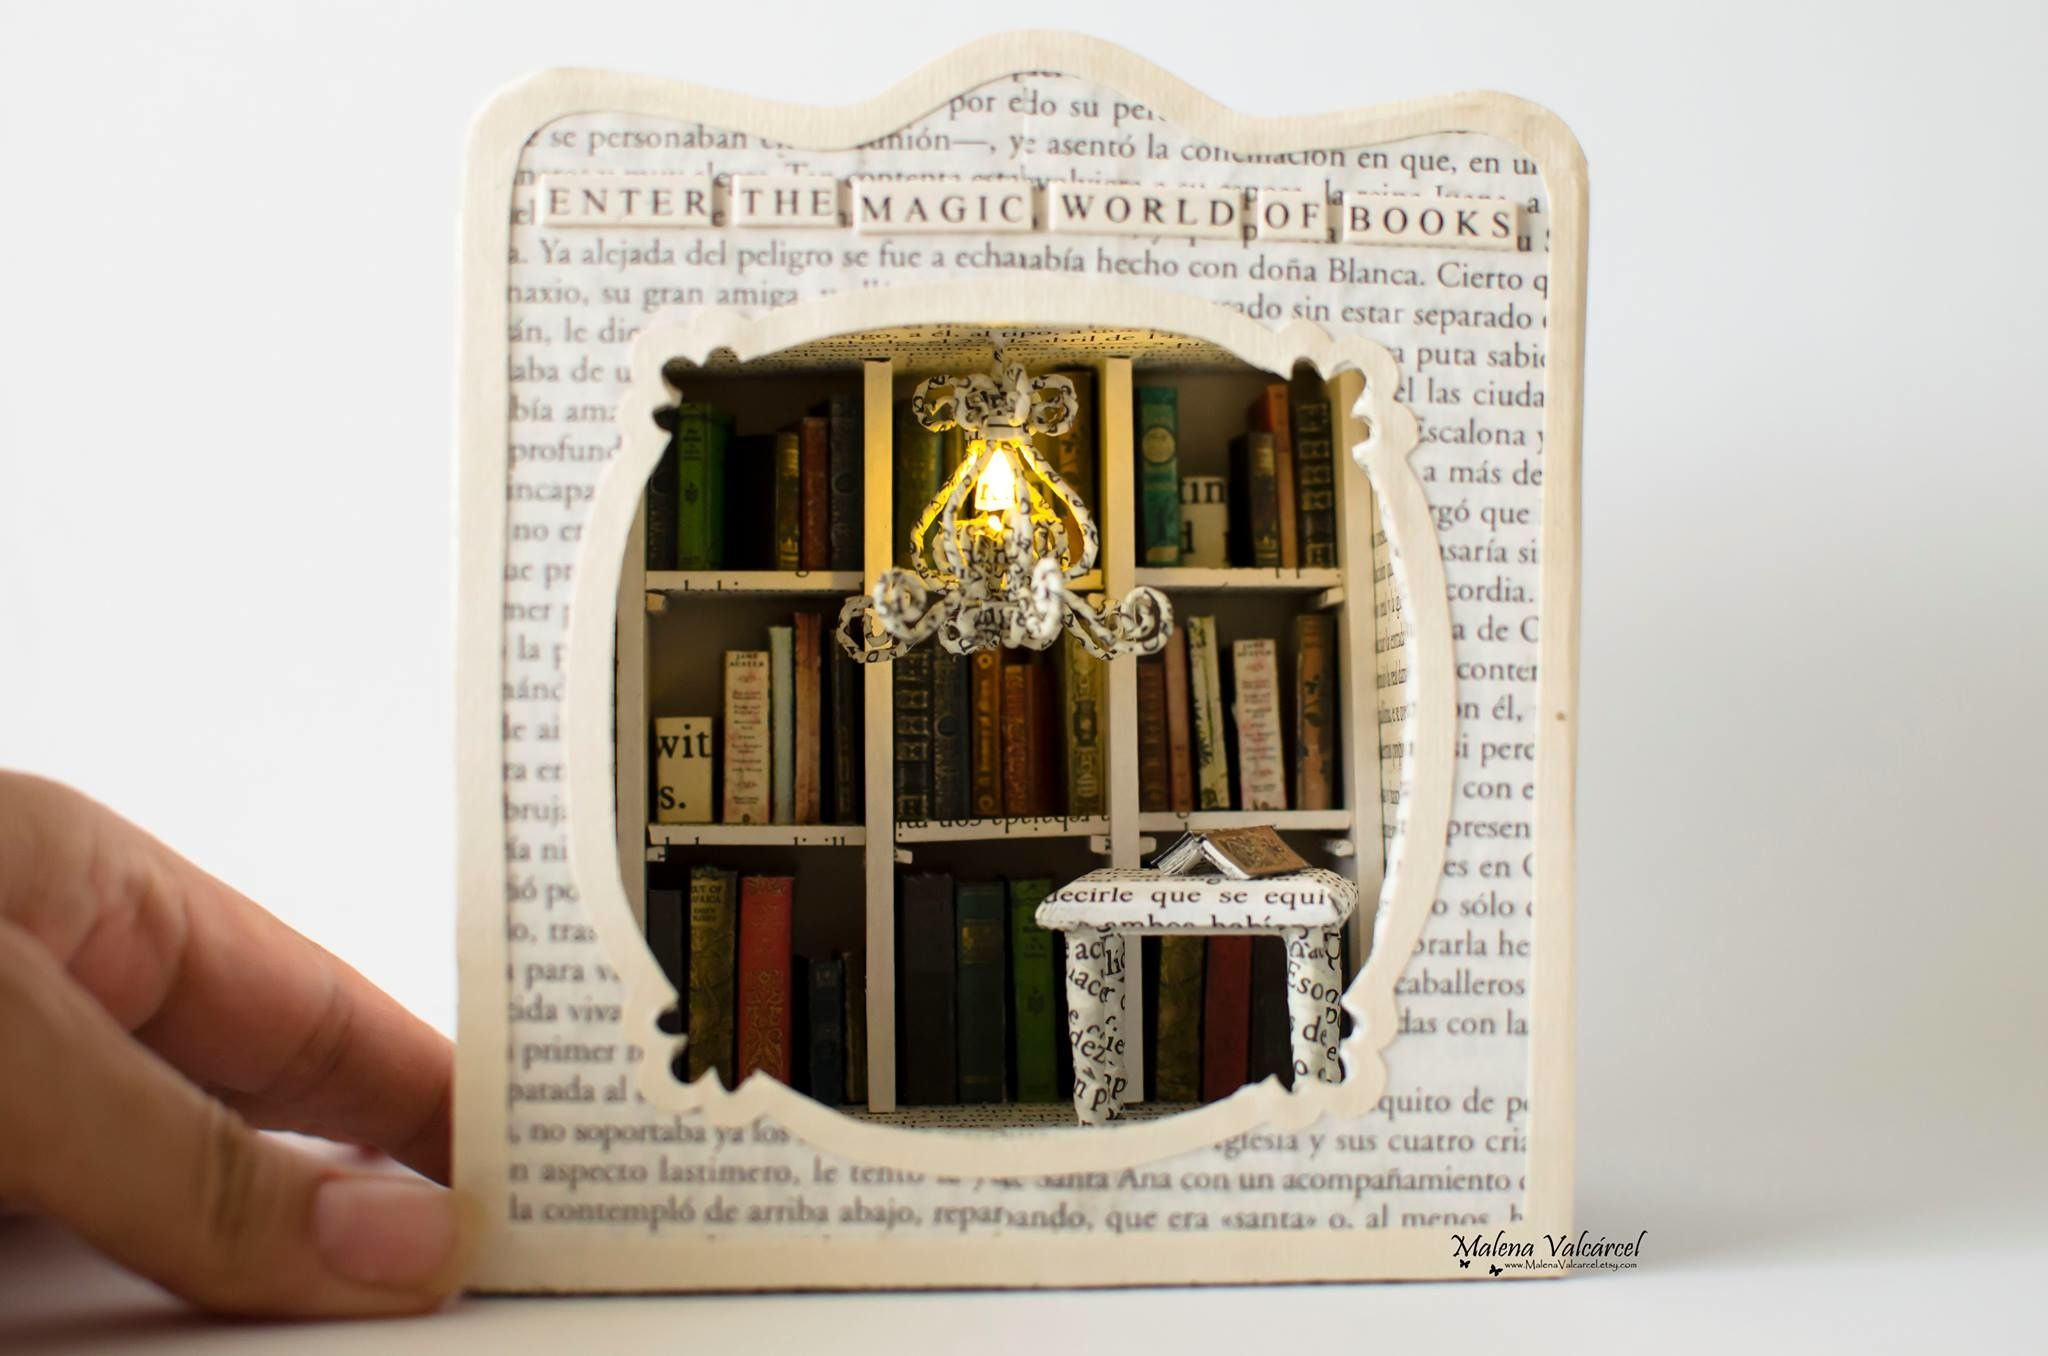 This woman makes incredible art from discarded books.